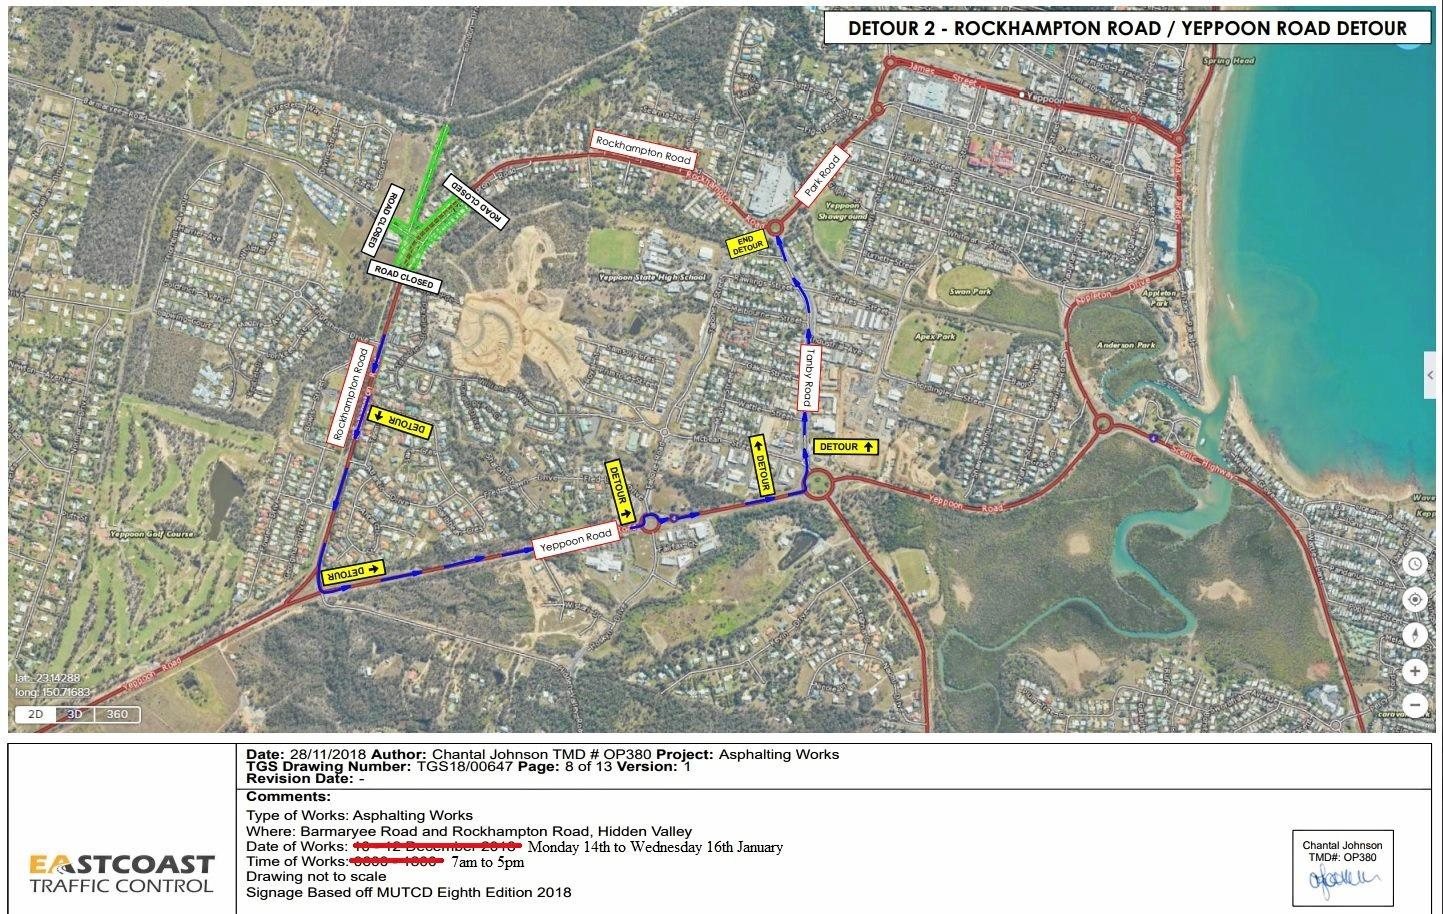 ROADWORKS MAP: Livingstone Shire Council has provided maps showing detours while roadworks are conducted at the closed Barmaryee and Rockhampton Road roundabout.